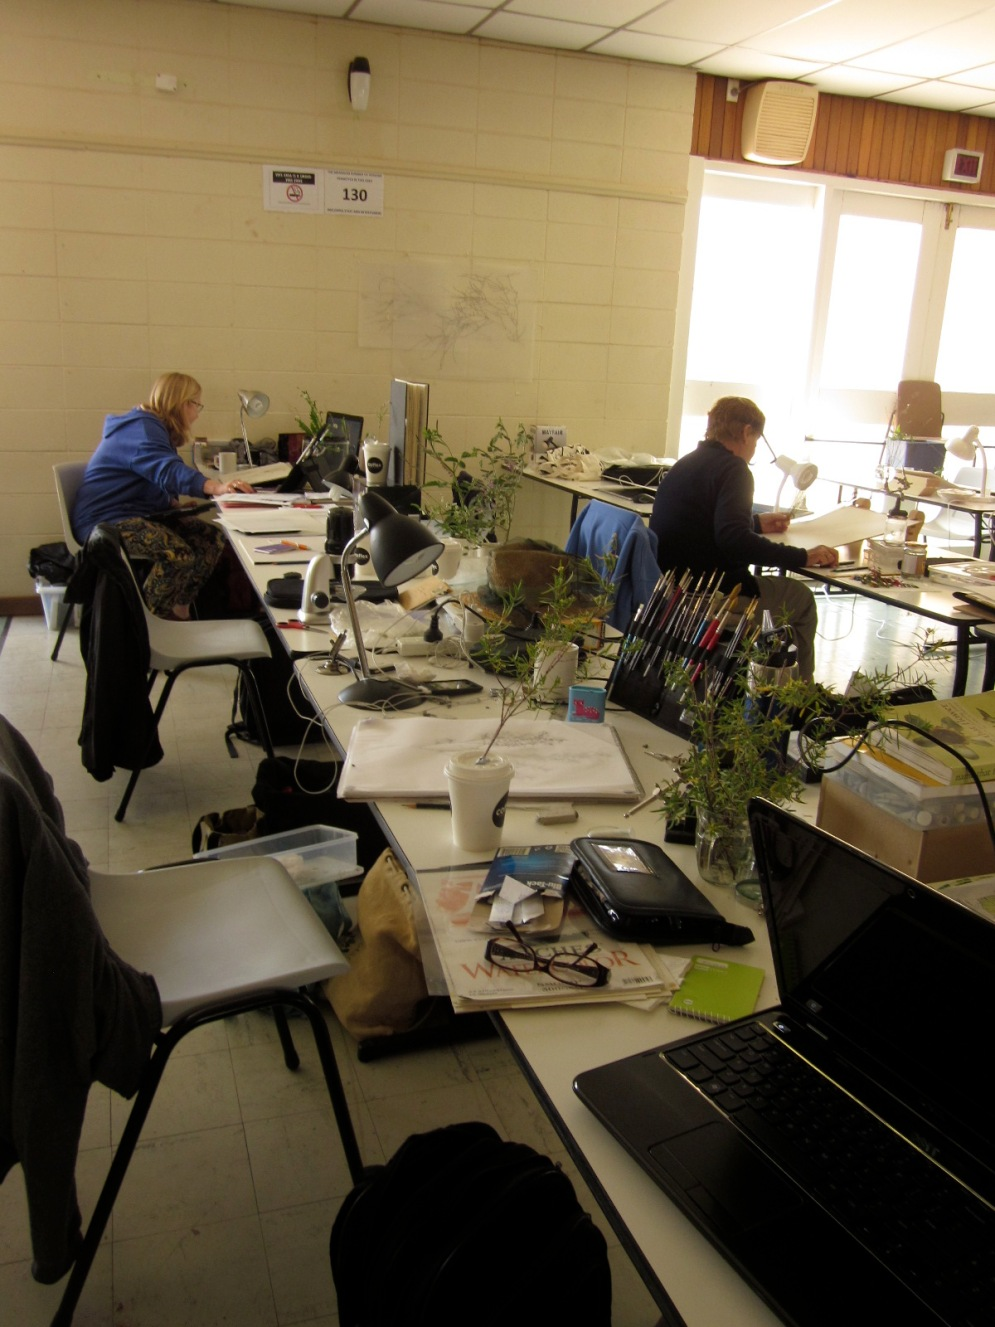 Work spaces. (Photo copyright: Anne Lawson, 2014)